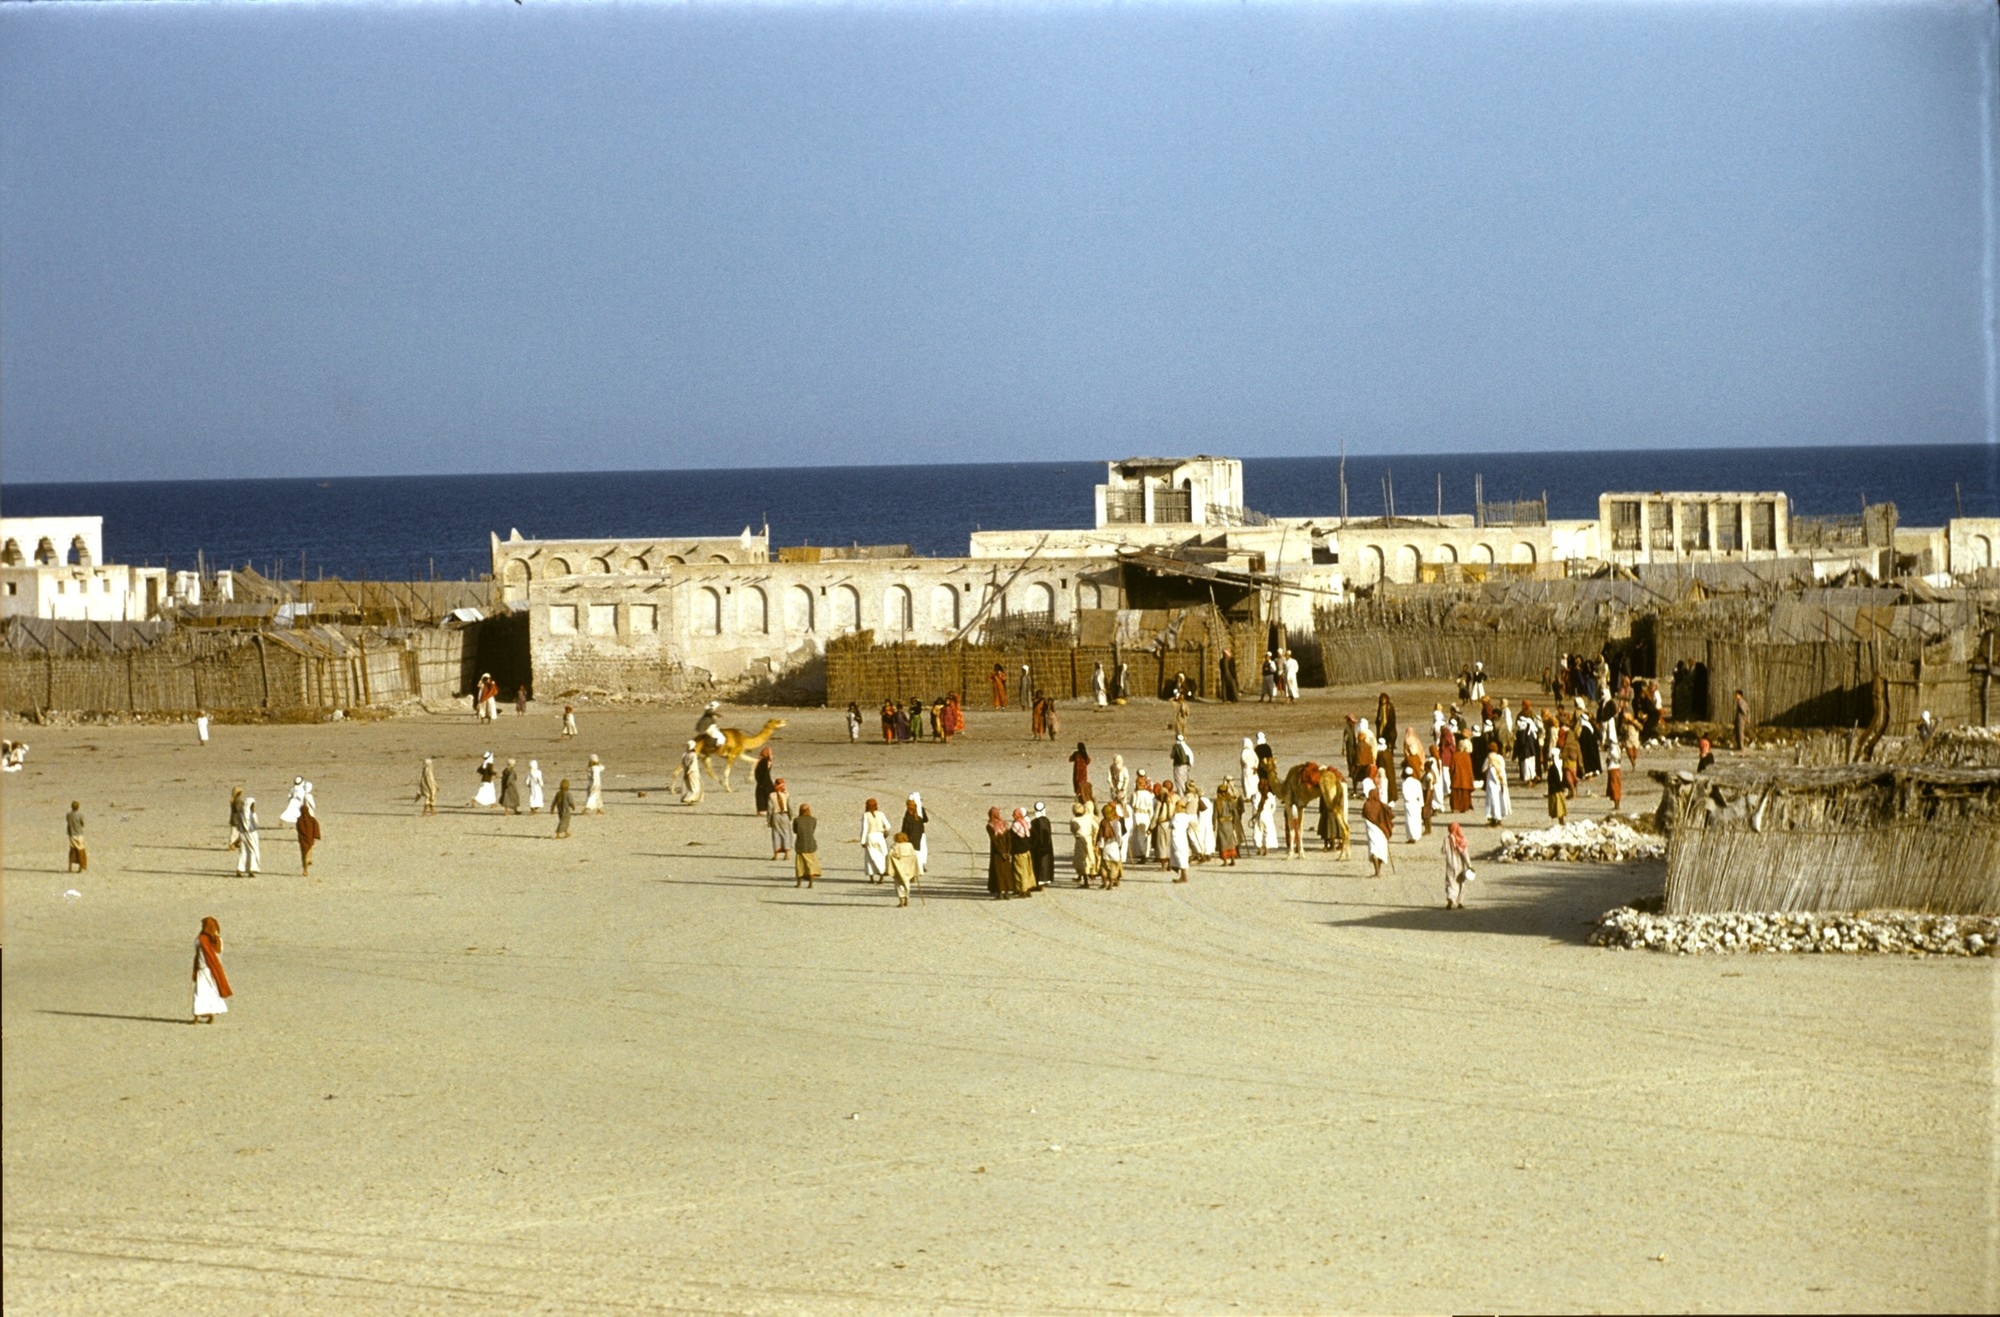 Llegada de una carrera de camellos, Dubai, 1950 © Ronald Codral; Cortesía de Codrai Gulf Collection - Abu Dhabi Tourism and Culture Authority